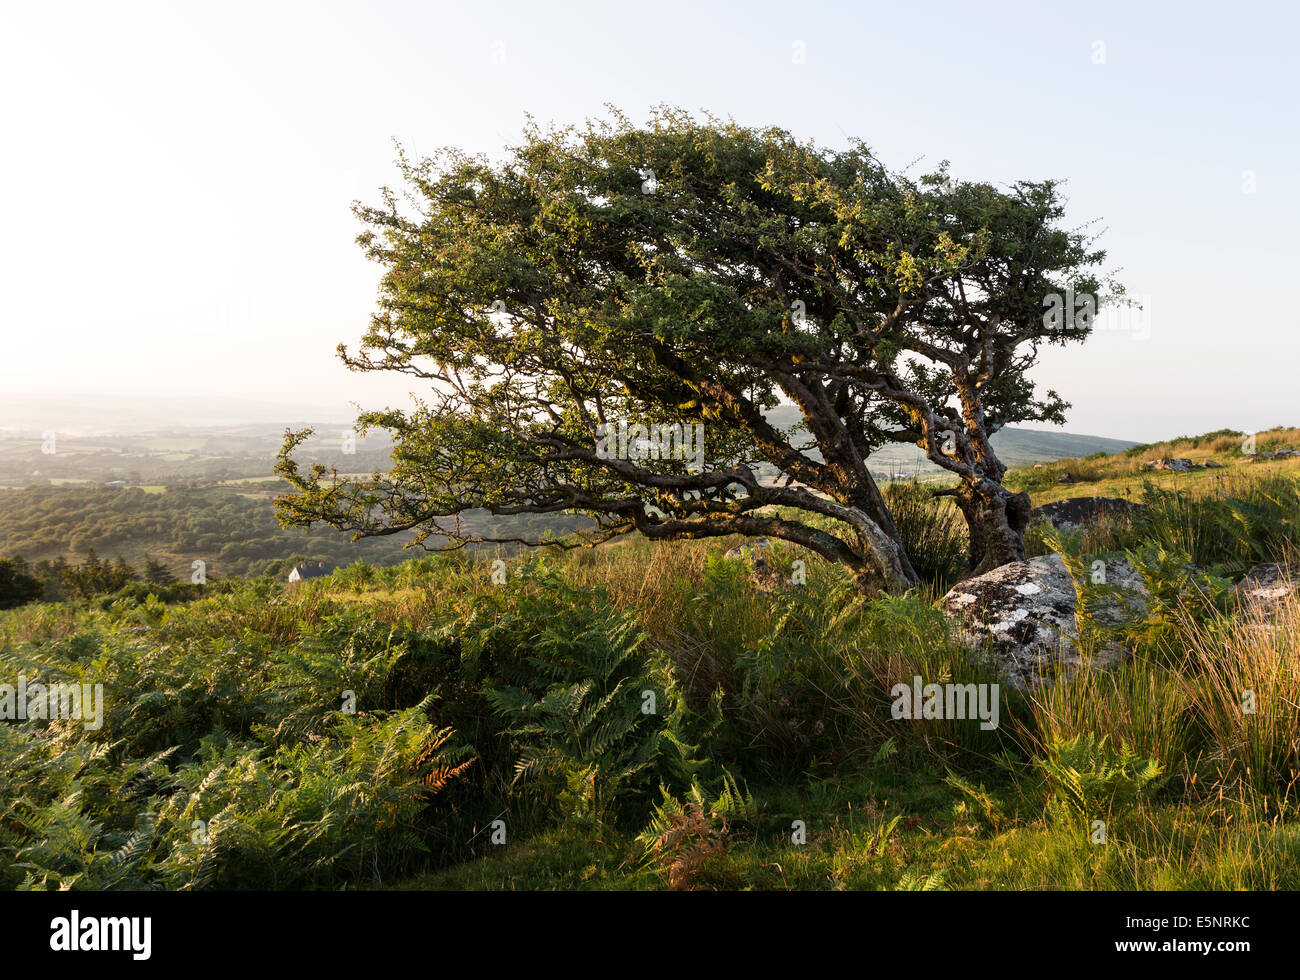 Common Hawthorn Tree Crataegus monogyna Shaped by the Prevailing Wind on Bodmin Moor Cornwall UK - Stock Image